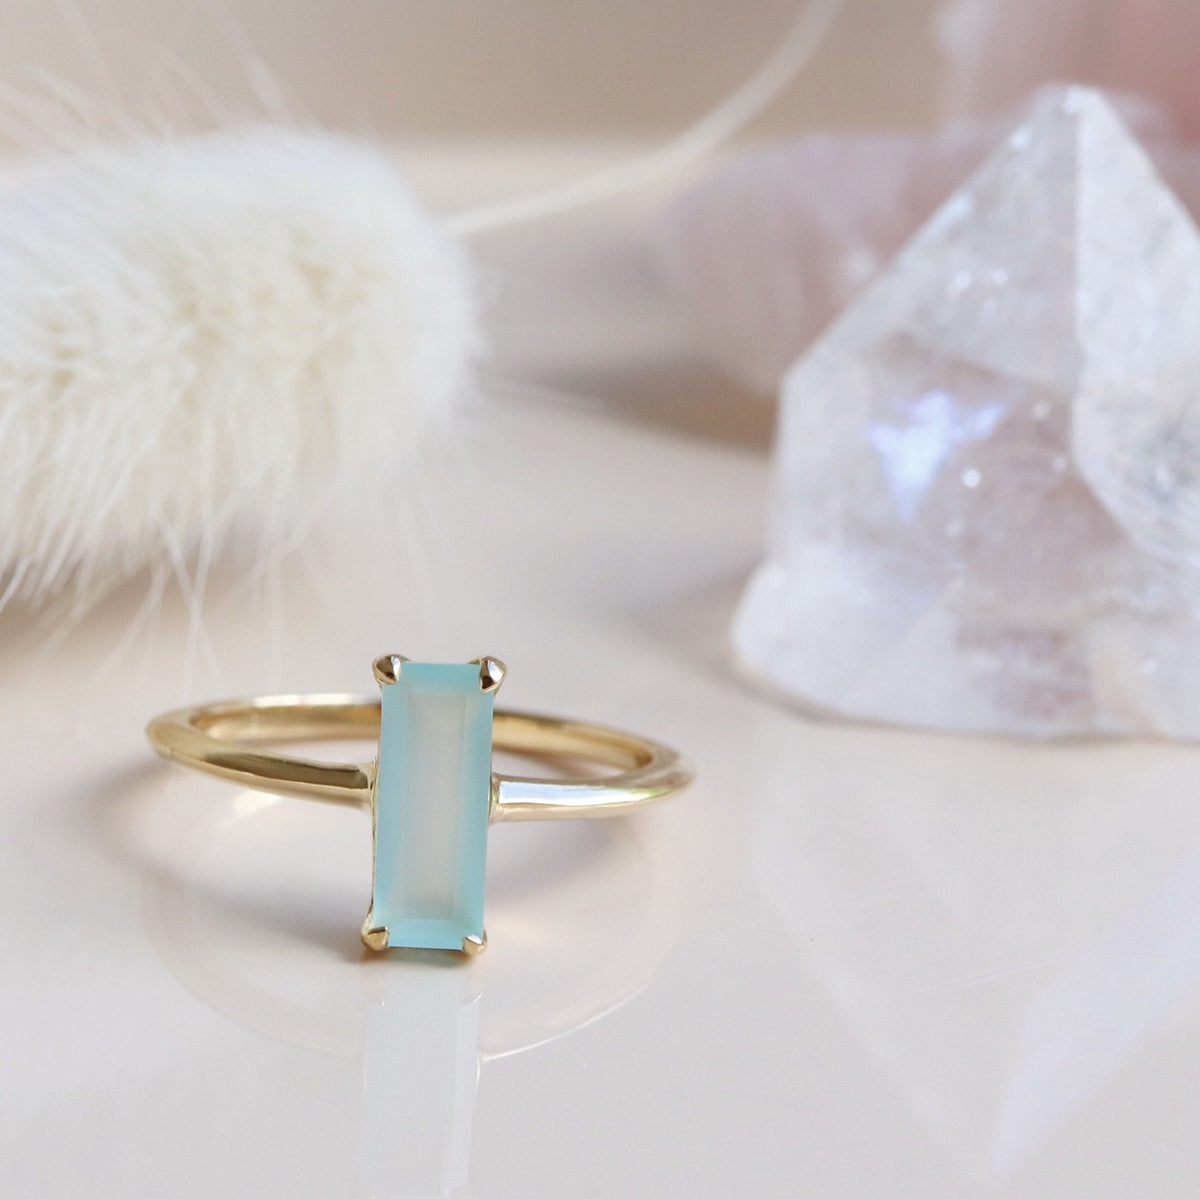 LOYAL RING AQUA CHALCEDONY & GOLD - SO PRETTY CARA COTTER